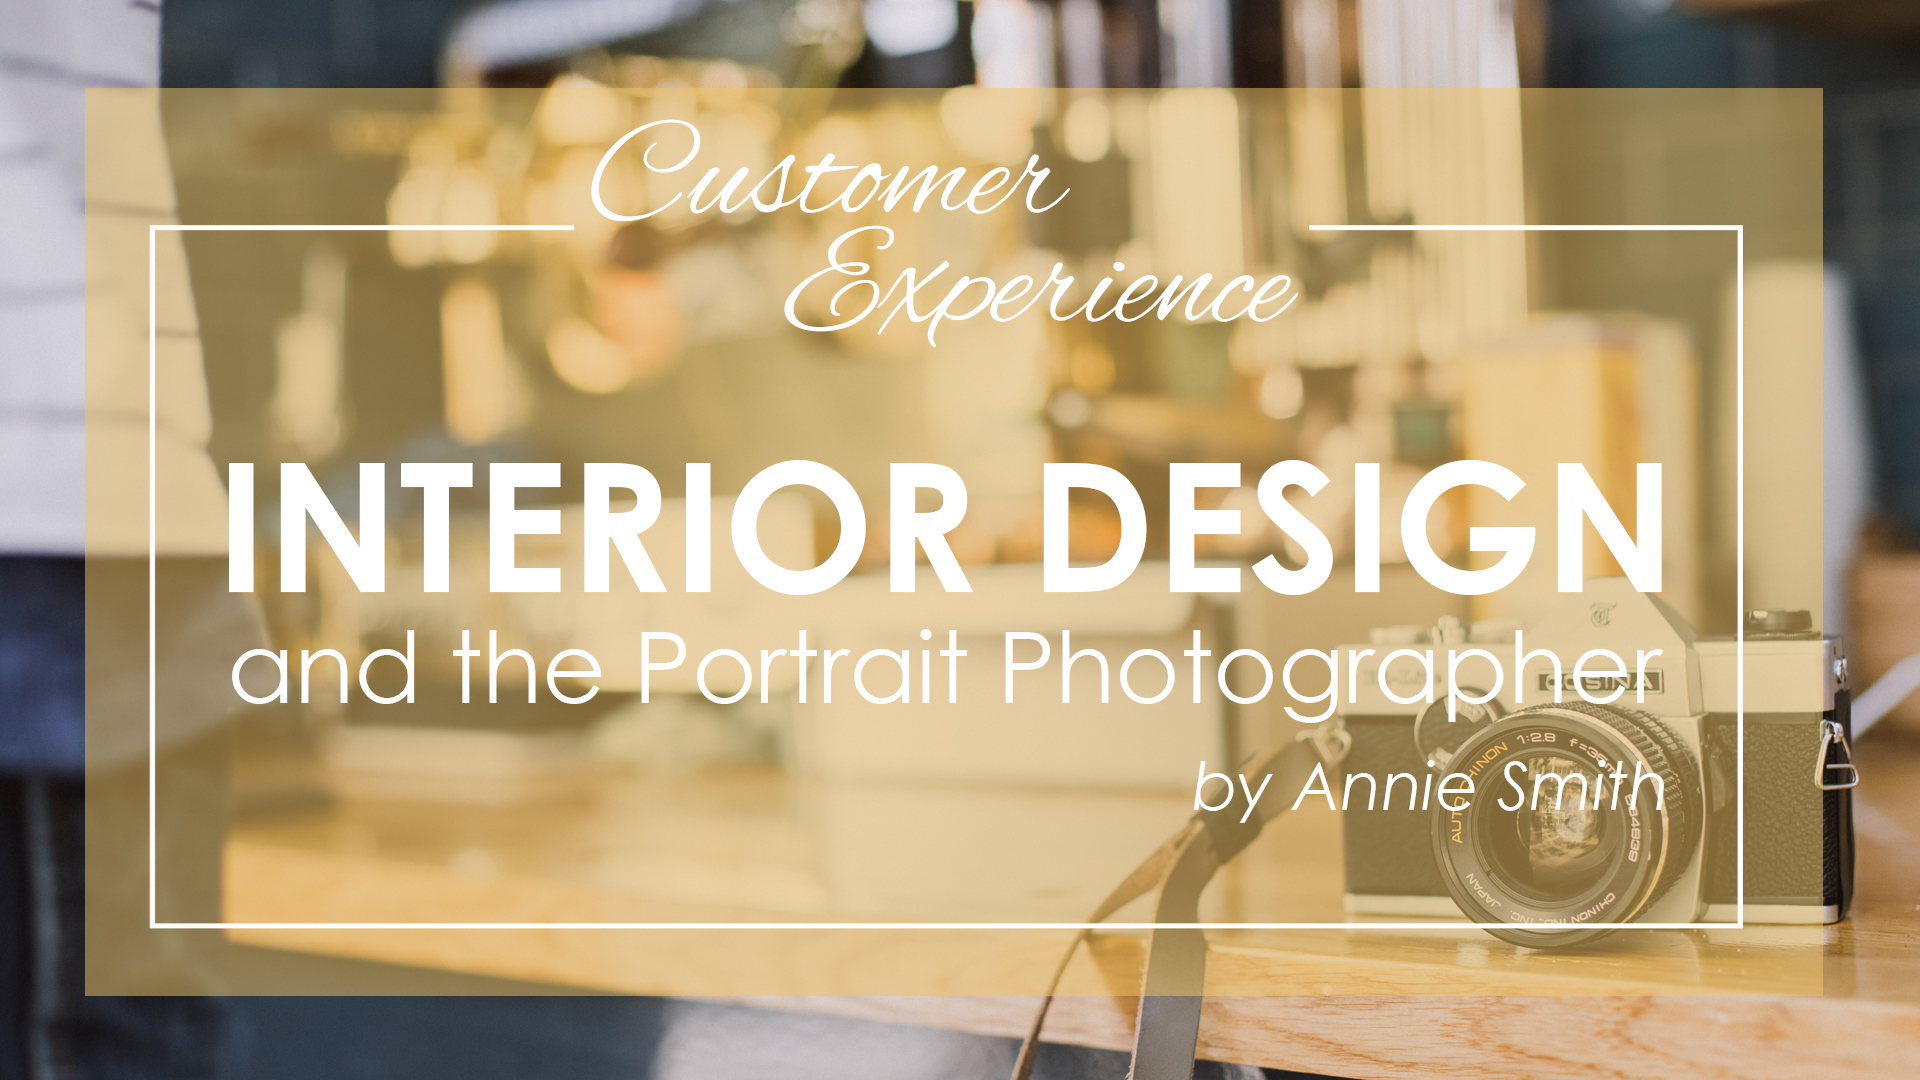 Interior Design and the Portrait Photographer